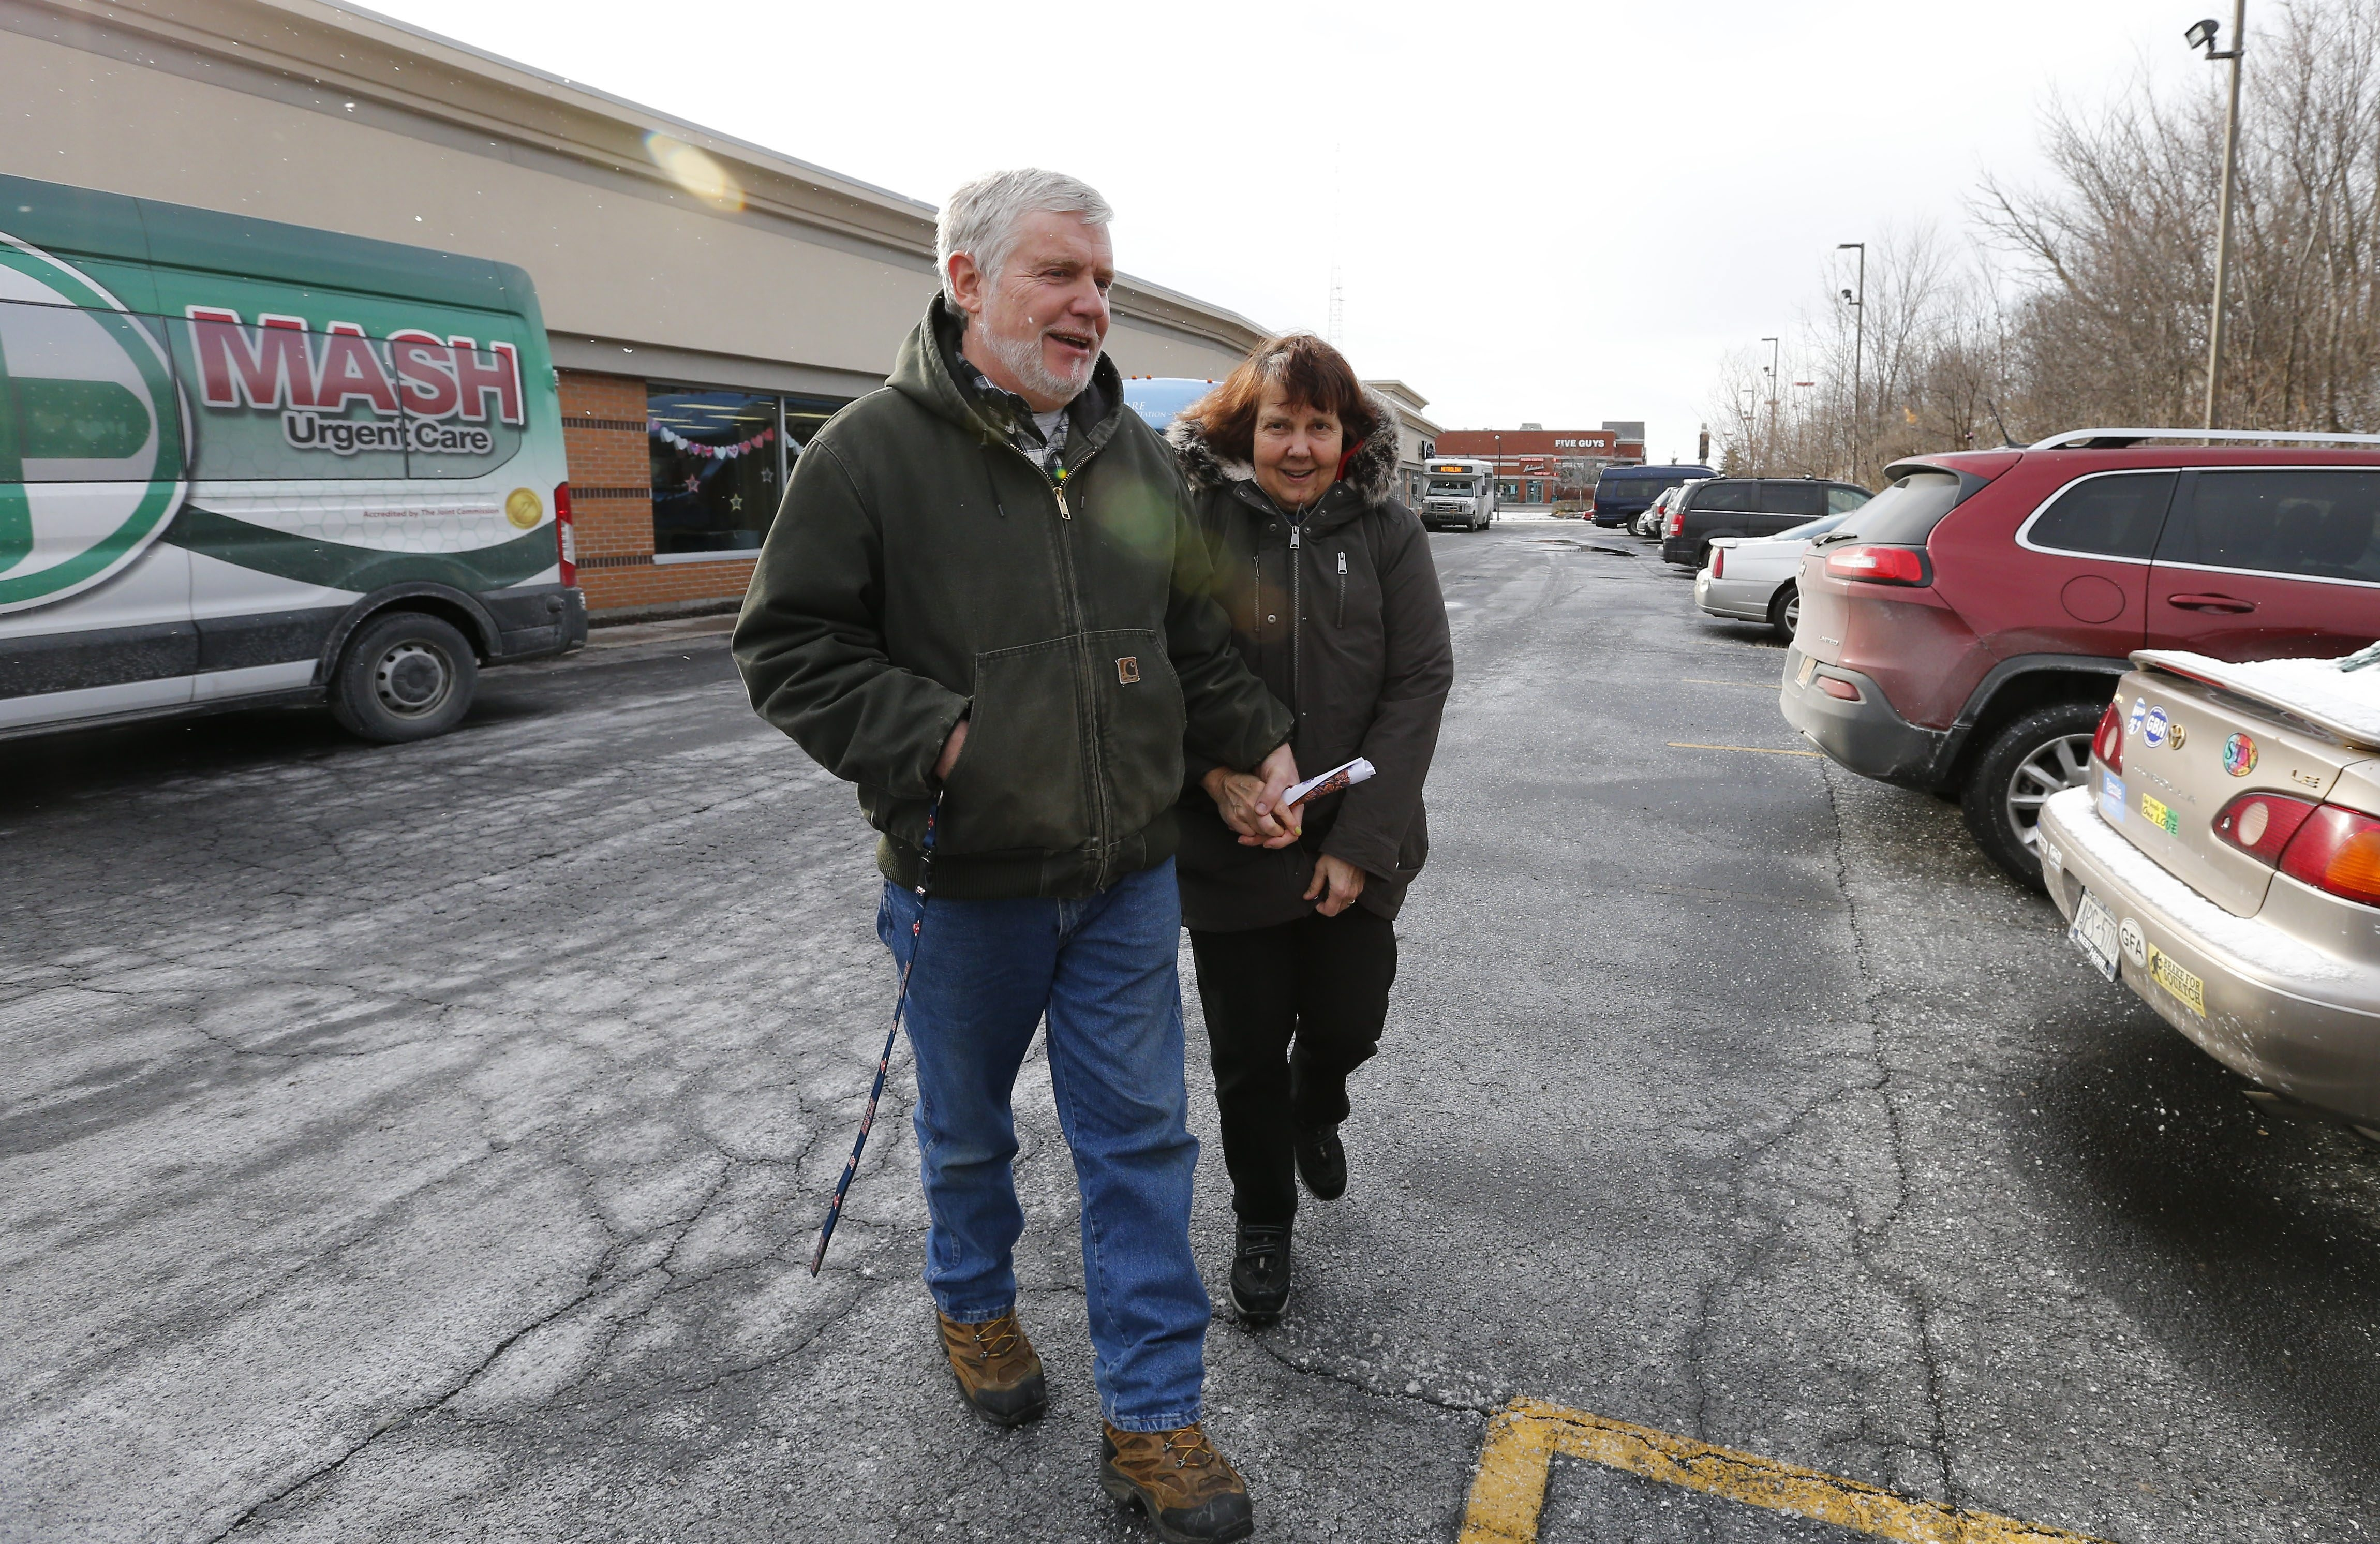 Bob Waddell picks up his wife, Marge, from People Inc.'s adult day care program for people with dementia in North Buffalo on Friday.